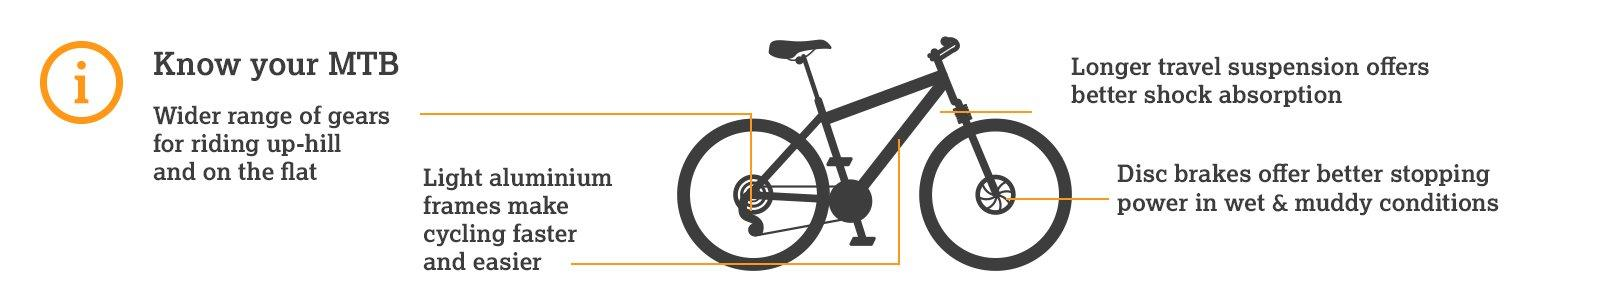 Know your hybrid bike